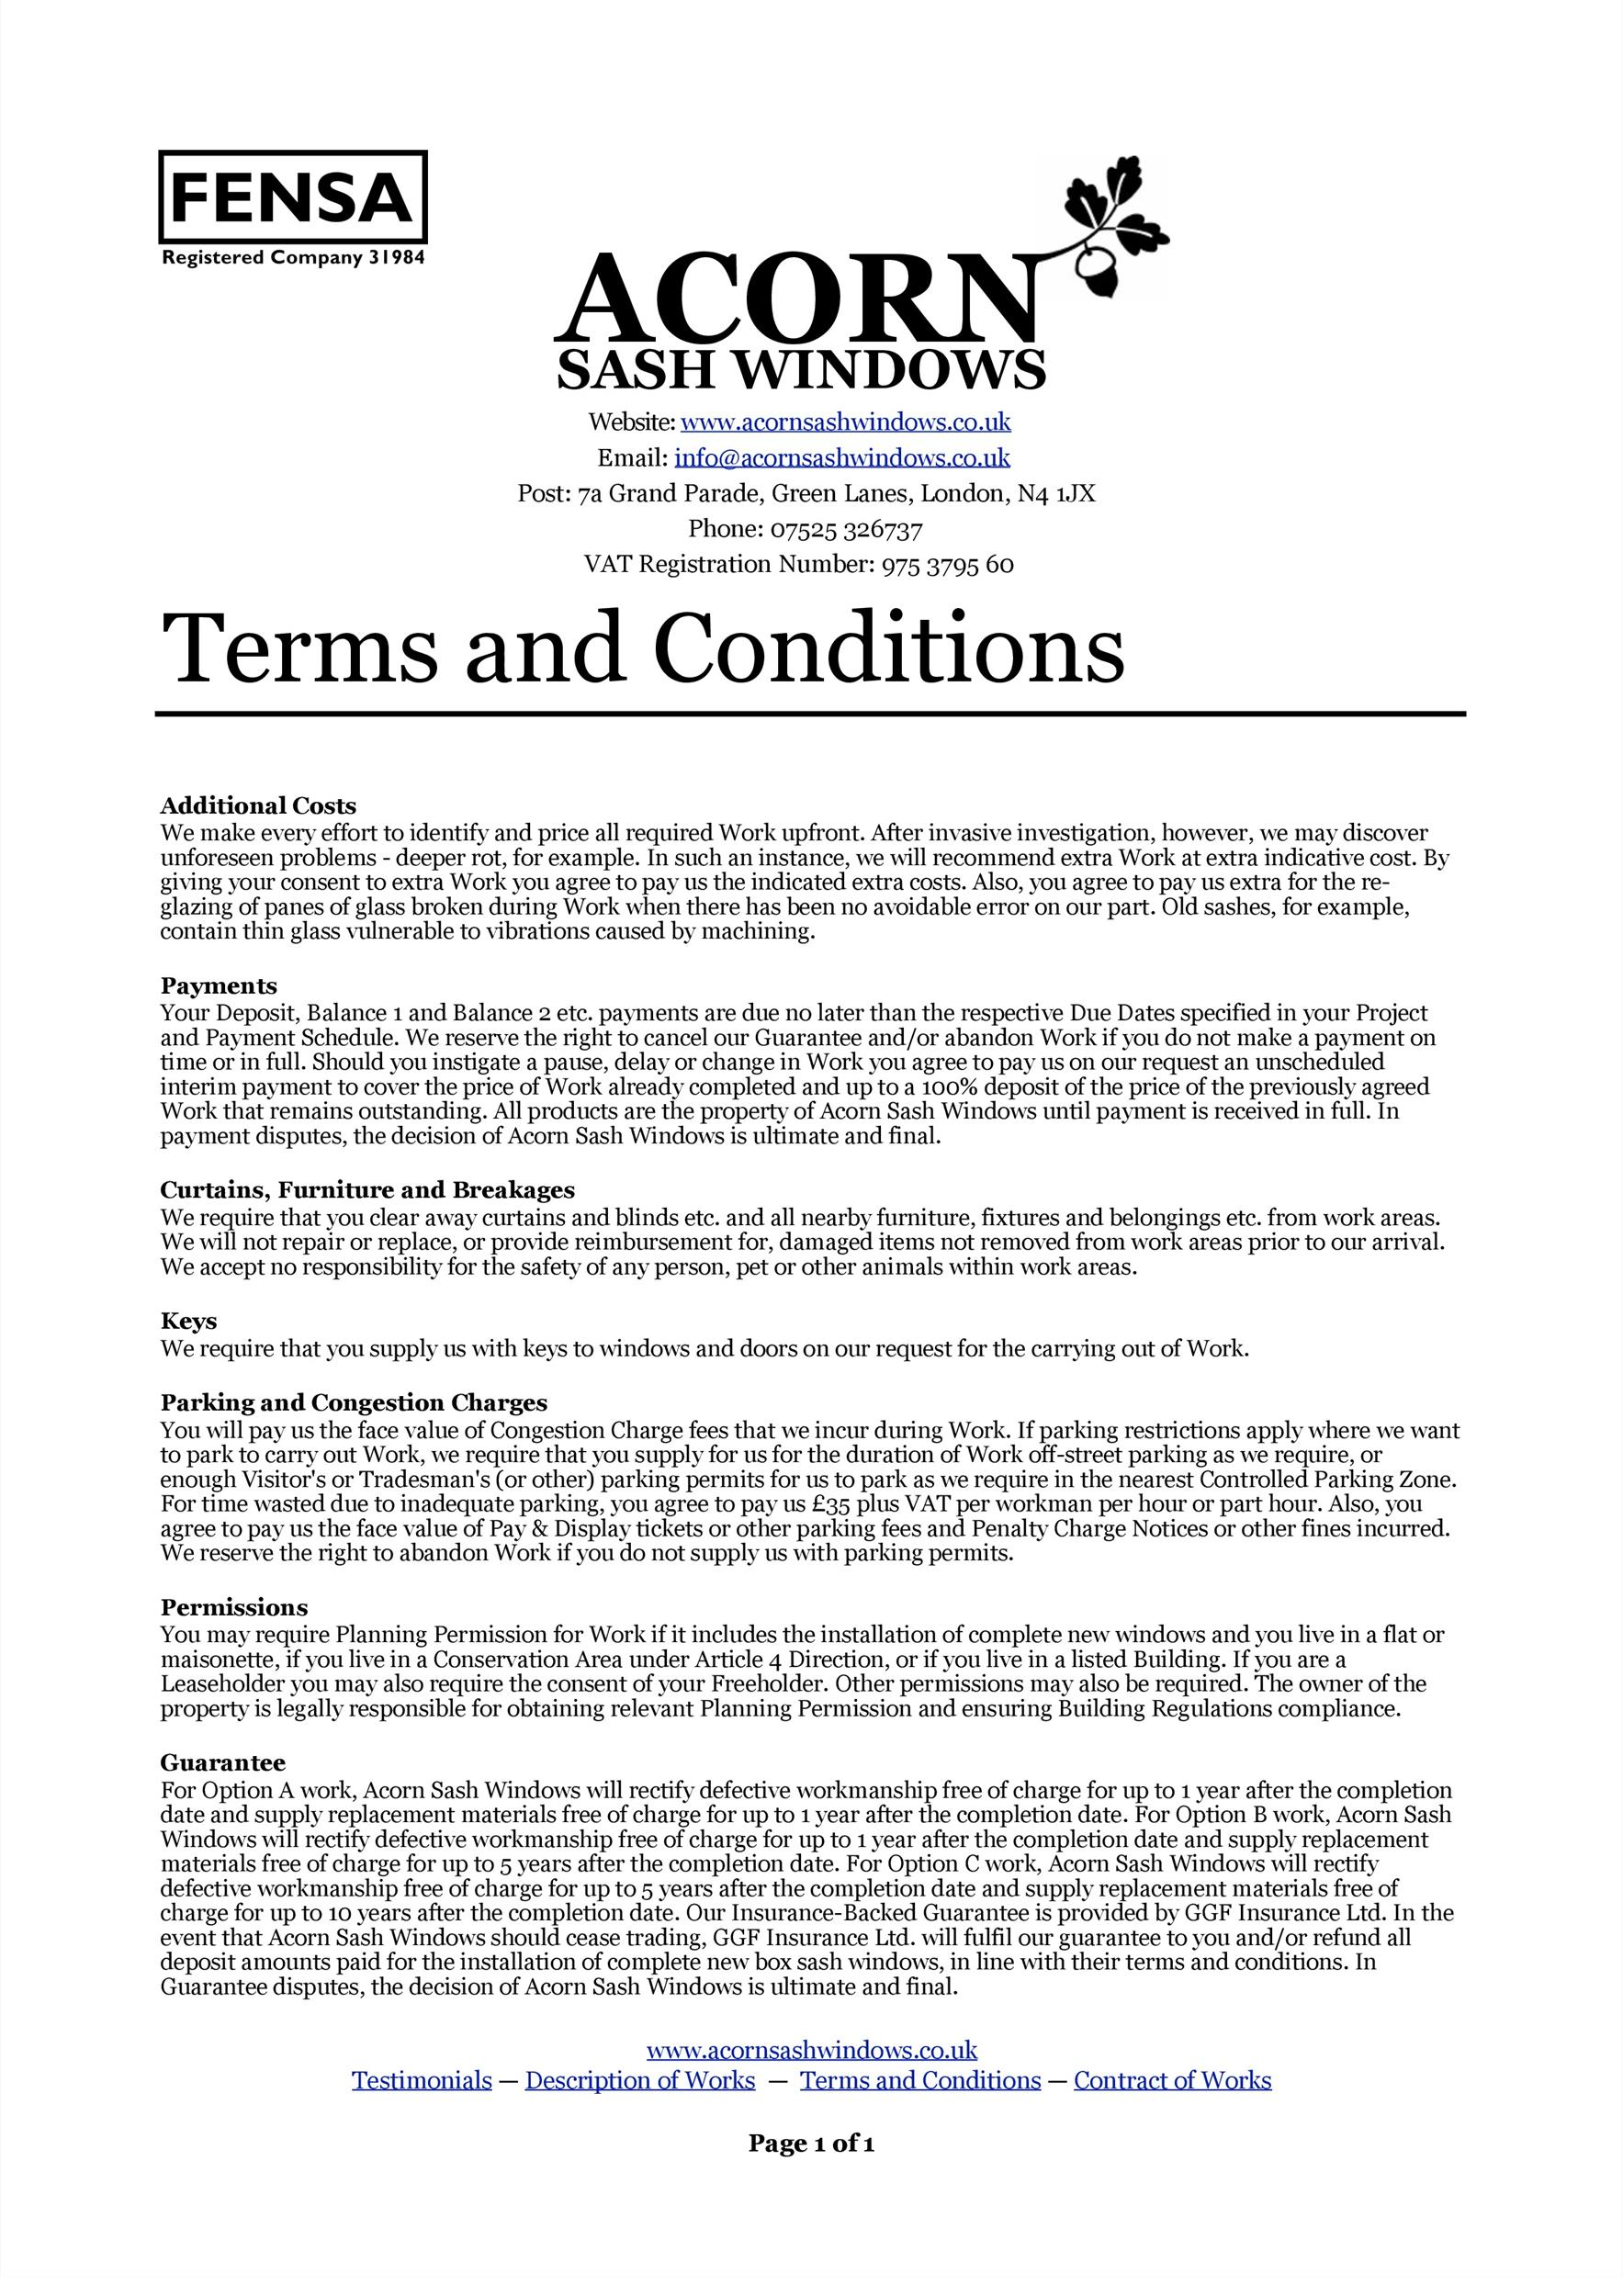 generic terms and conditions template 40 free terms and conditions templates for any website